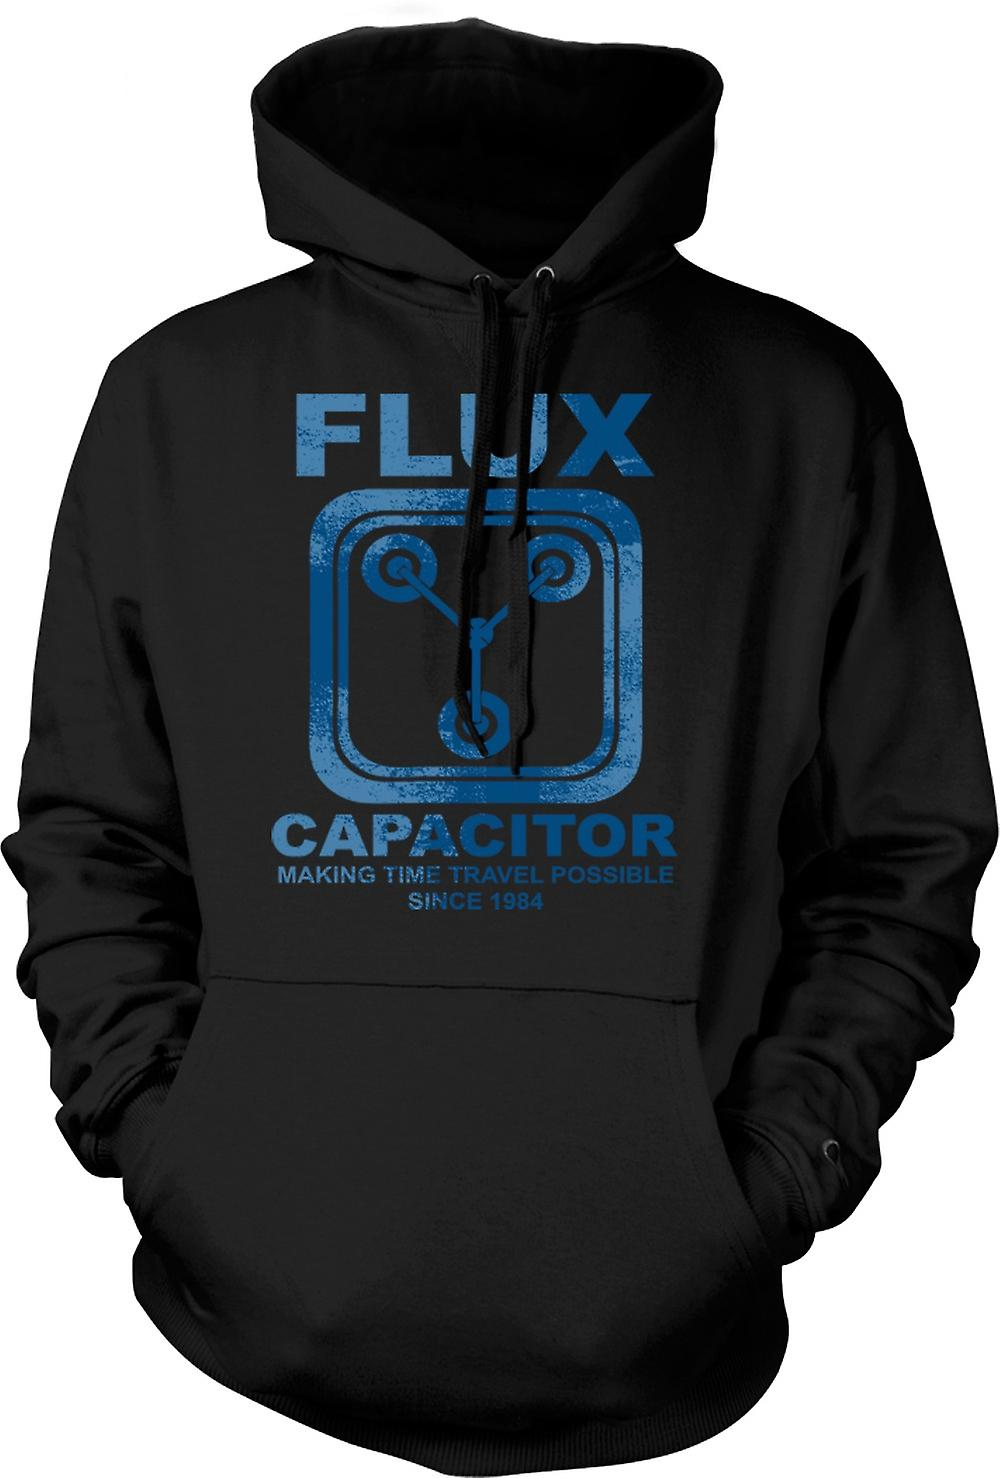 Mens Hoodie - Flux Capacitor - Making Time Travel Possible